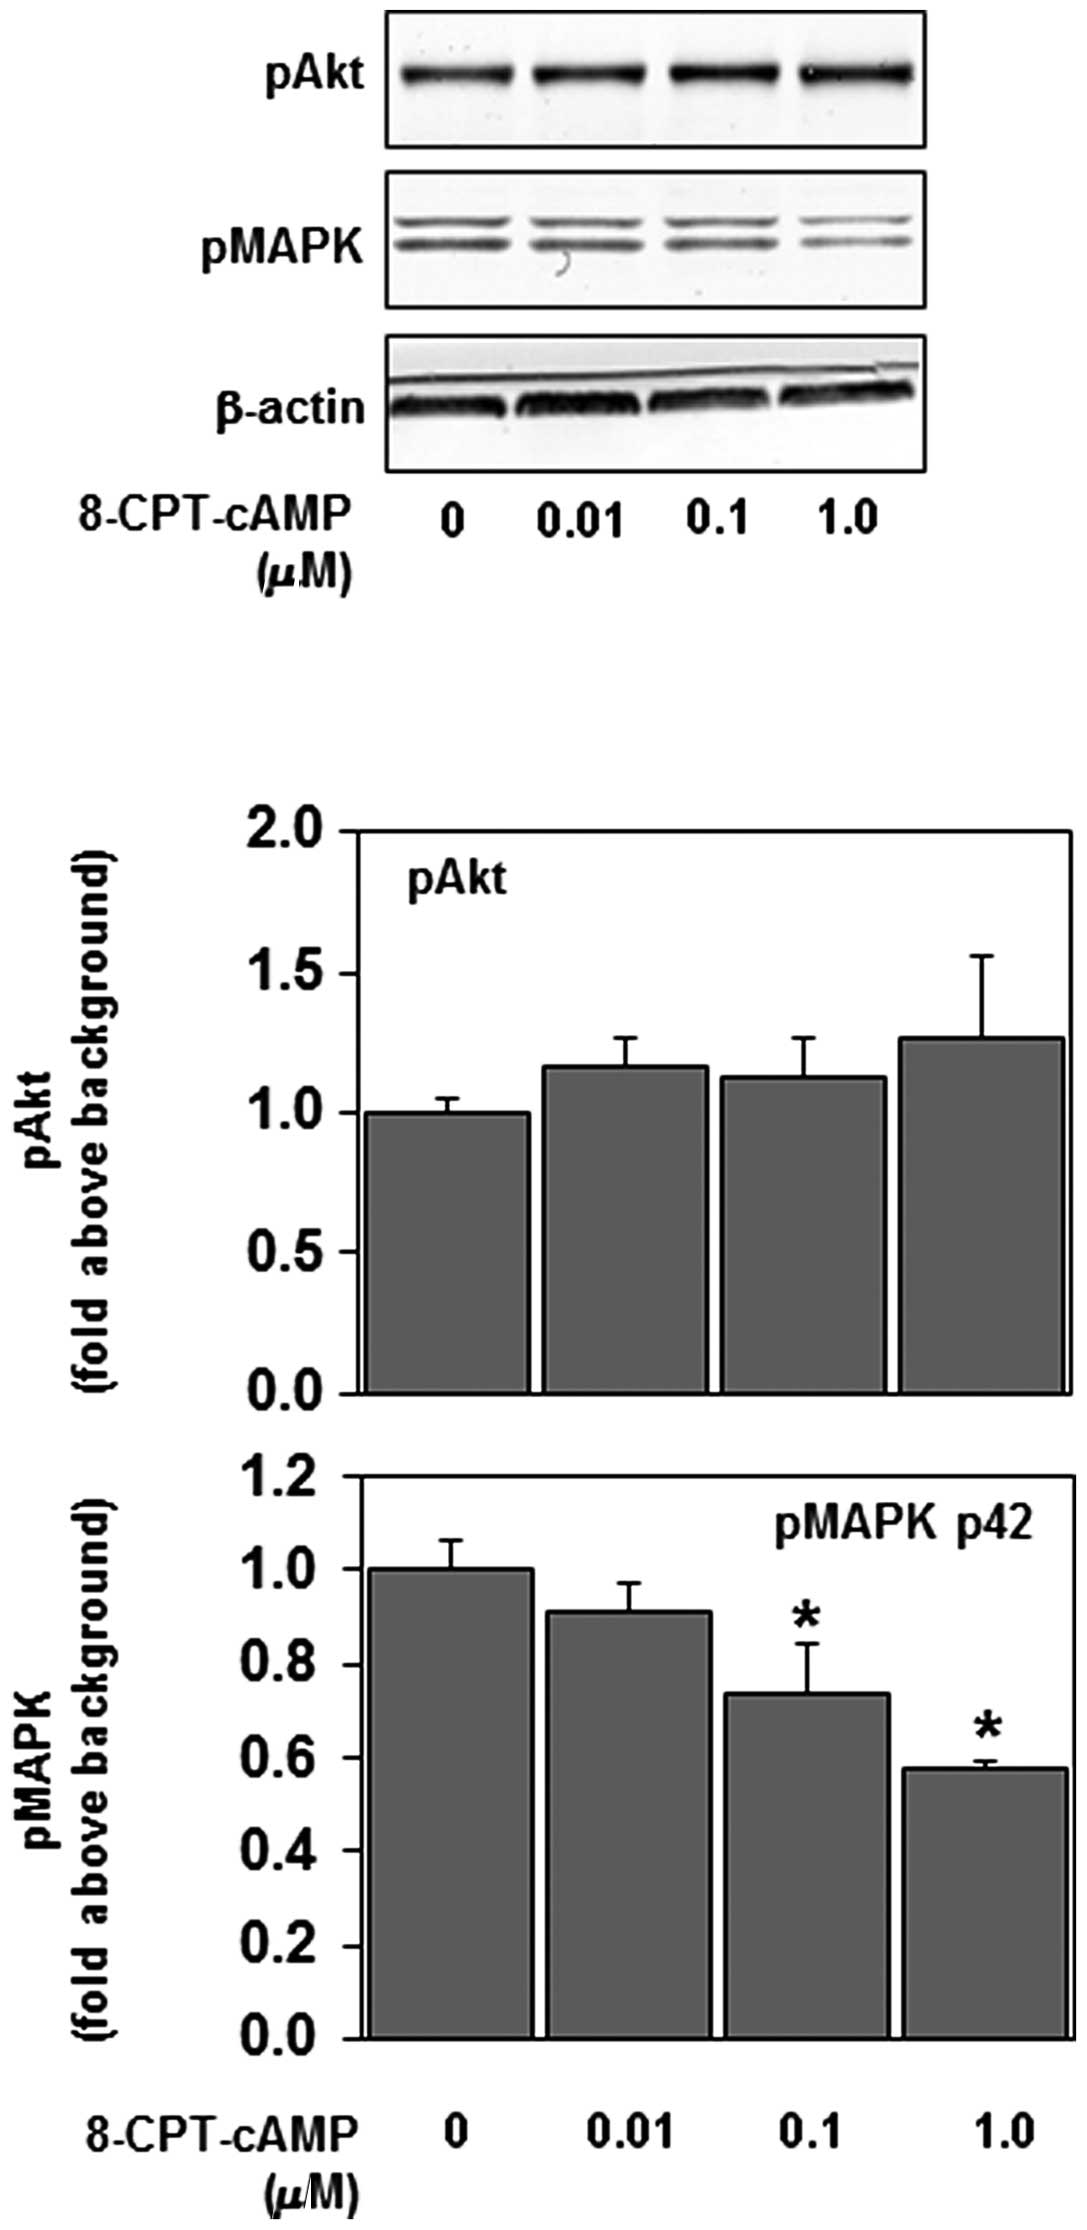 Targeted activation of PKA and Epac promotes glioblastoma